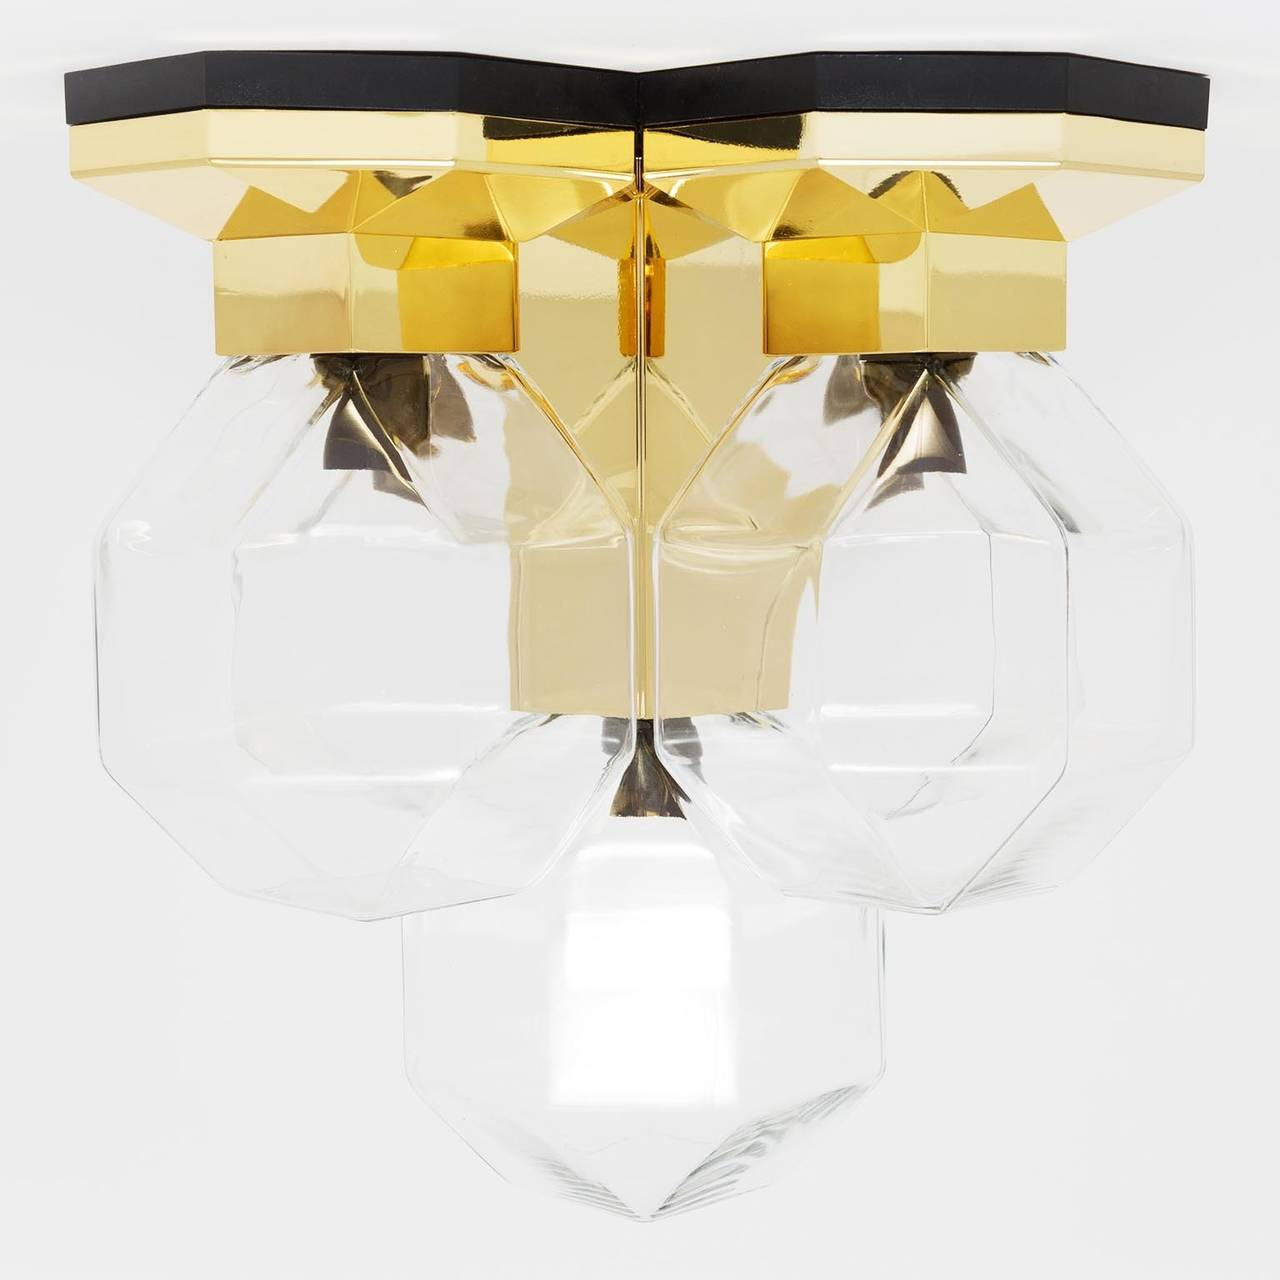 Ceiling Lights Germany : Motoko ishii table wall or ceiling light fixture brass